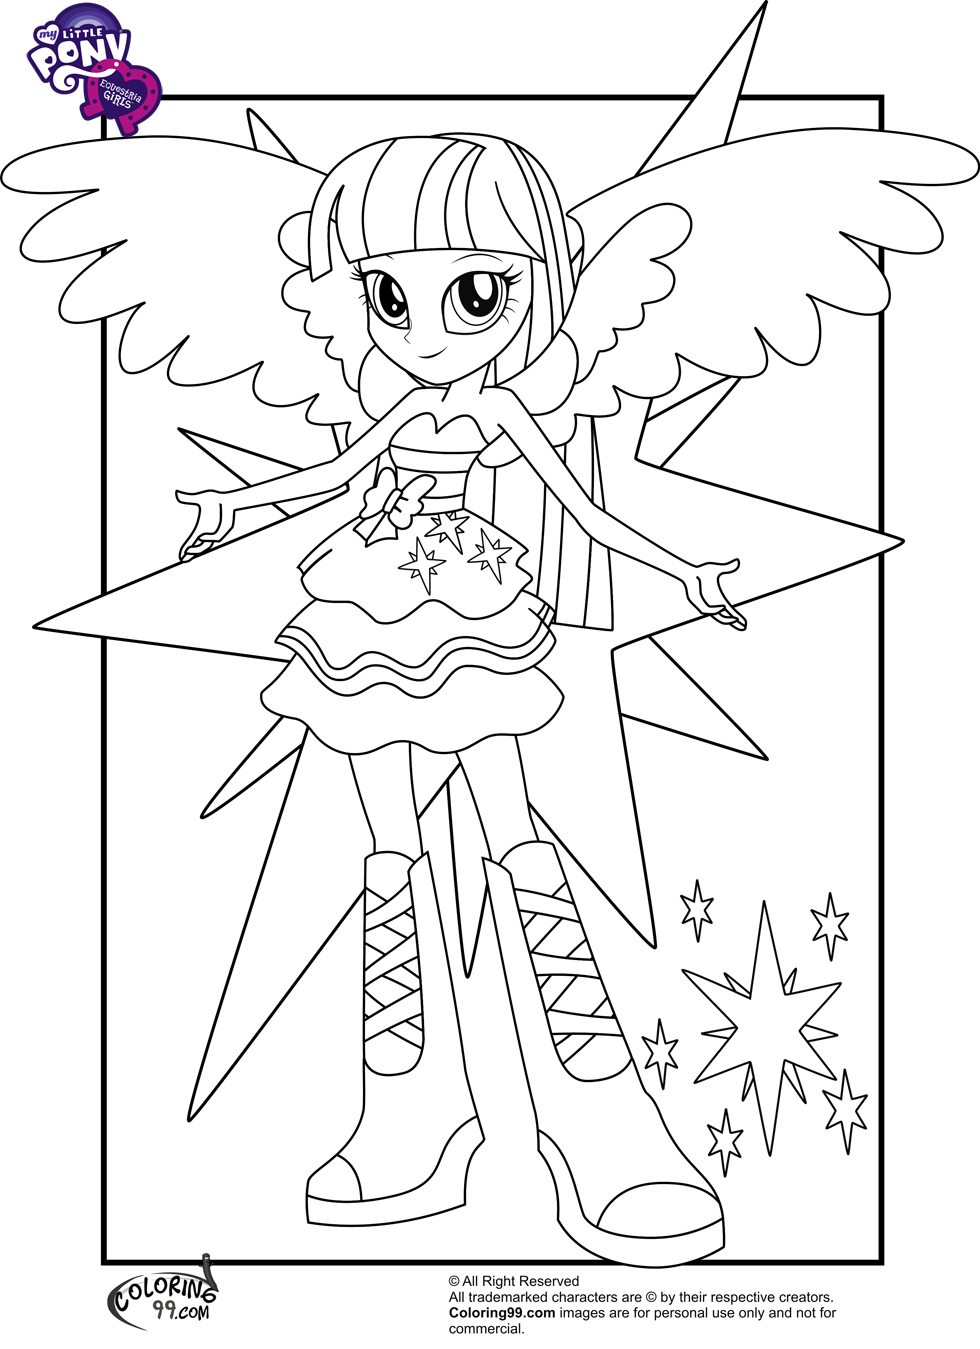 My Little Pony Equestria Girls Coloring Pages Team Colors Equestria Twilight Sparkle Coloring Pages